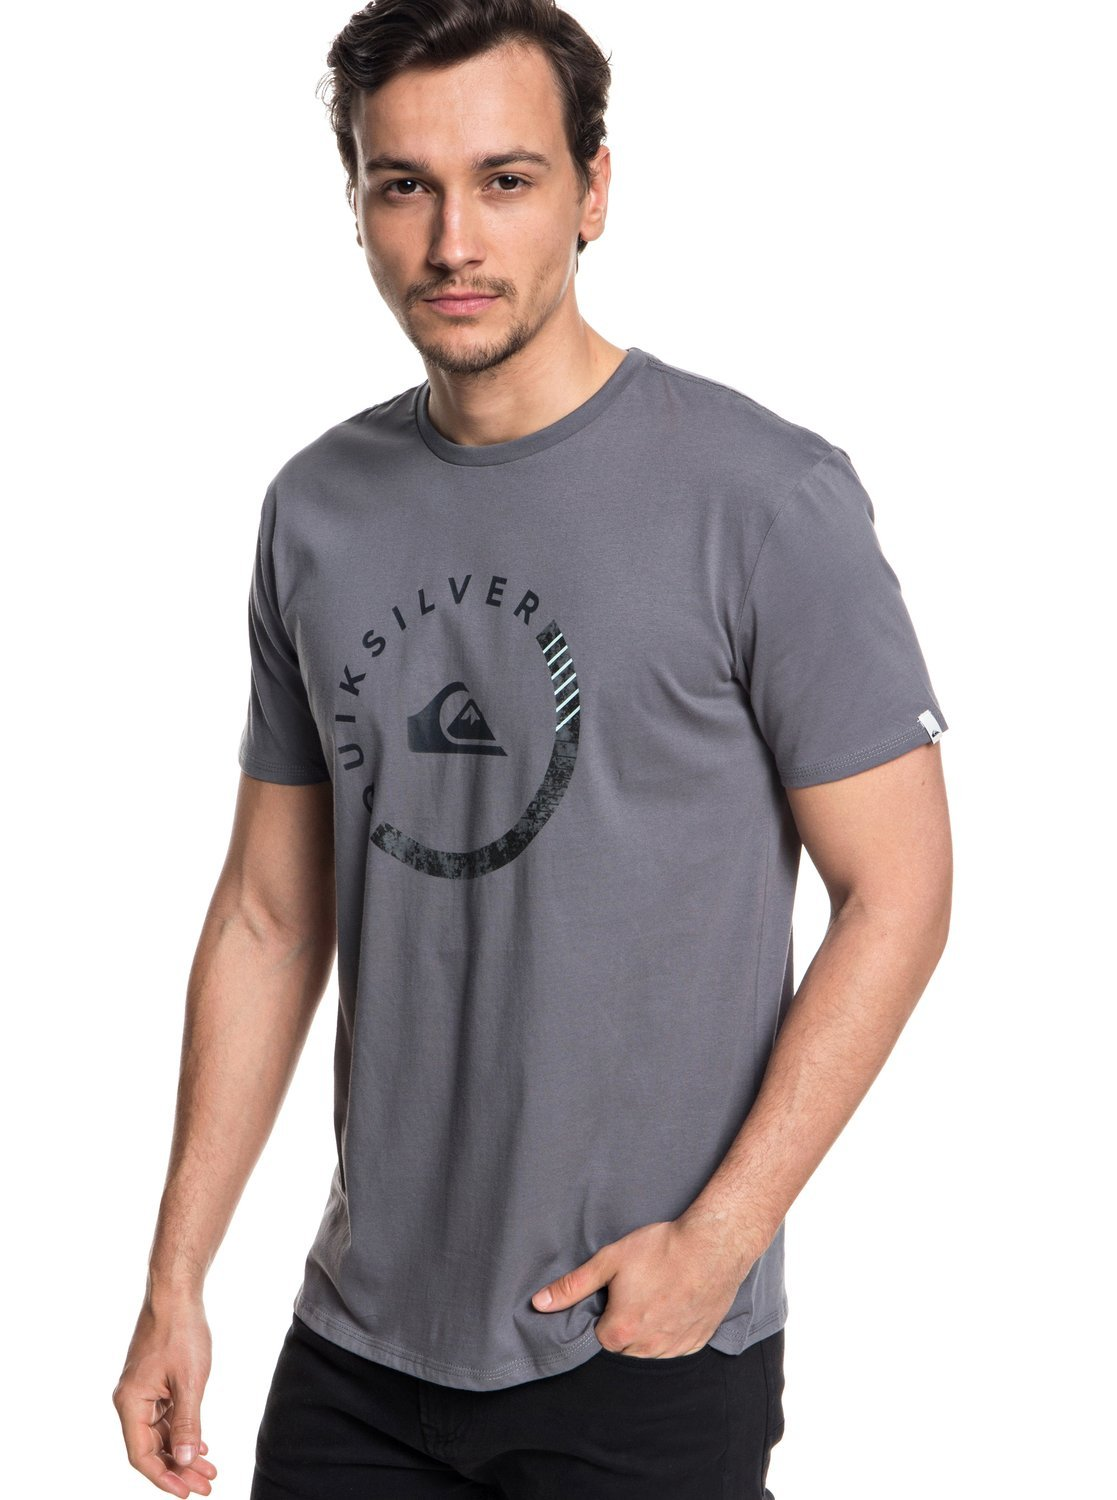 Quiksilver Men's Logo Tee Shirt, Slab Session Quiet Shade, M by Quiksilver (Image #2)